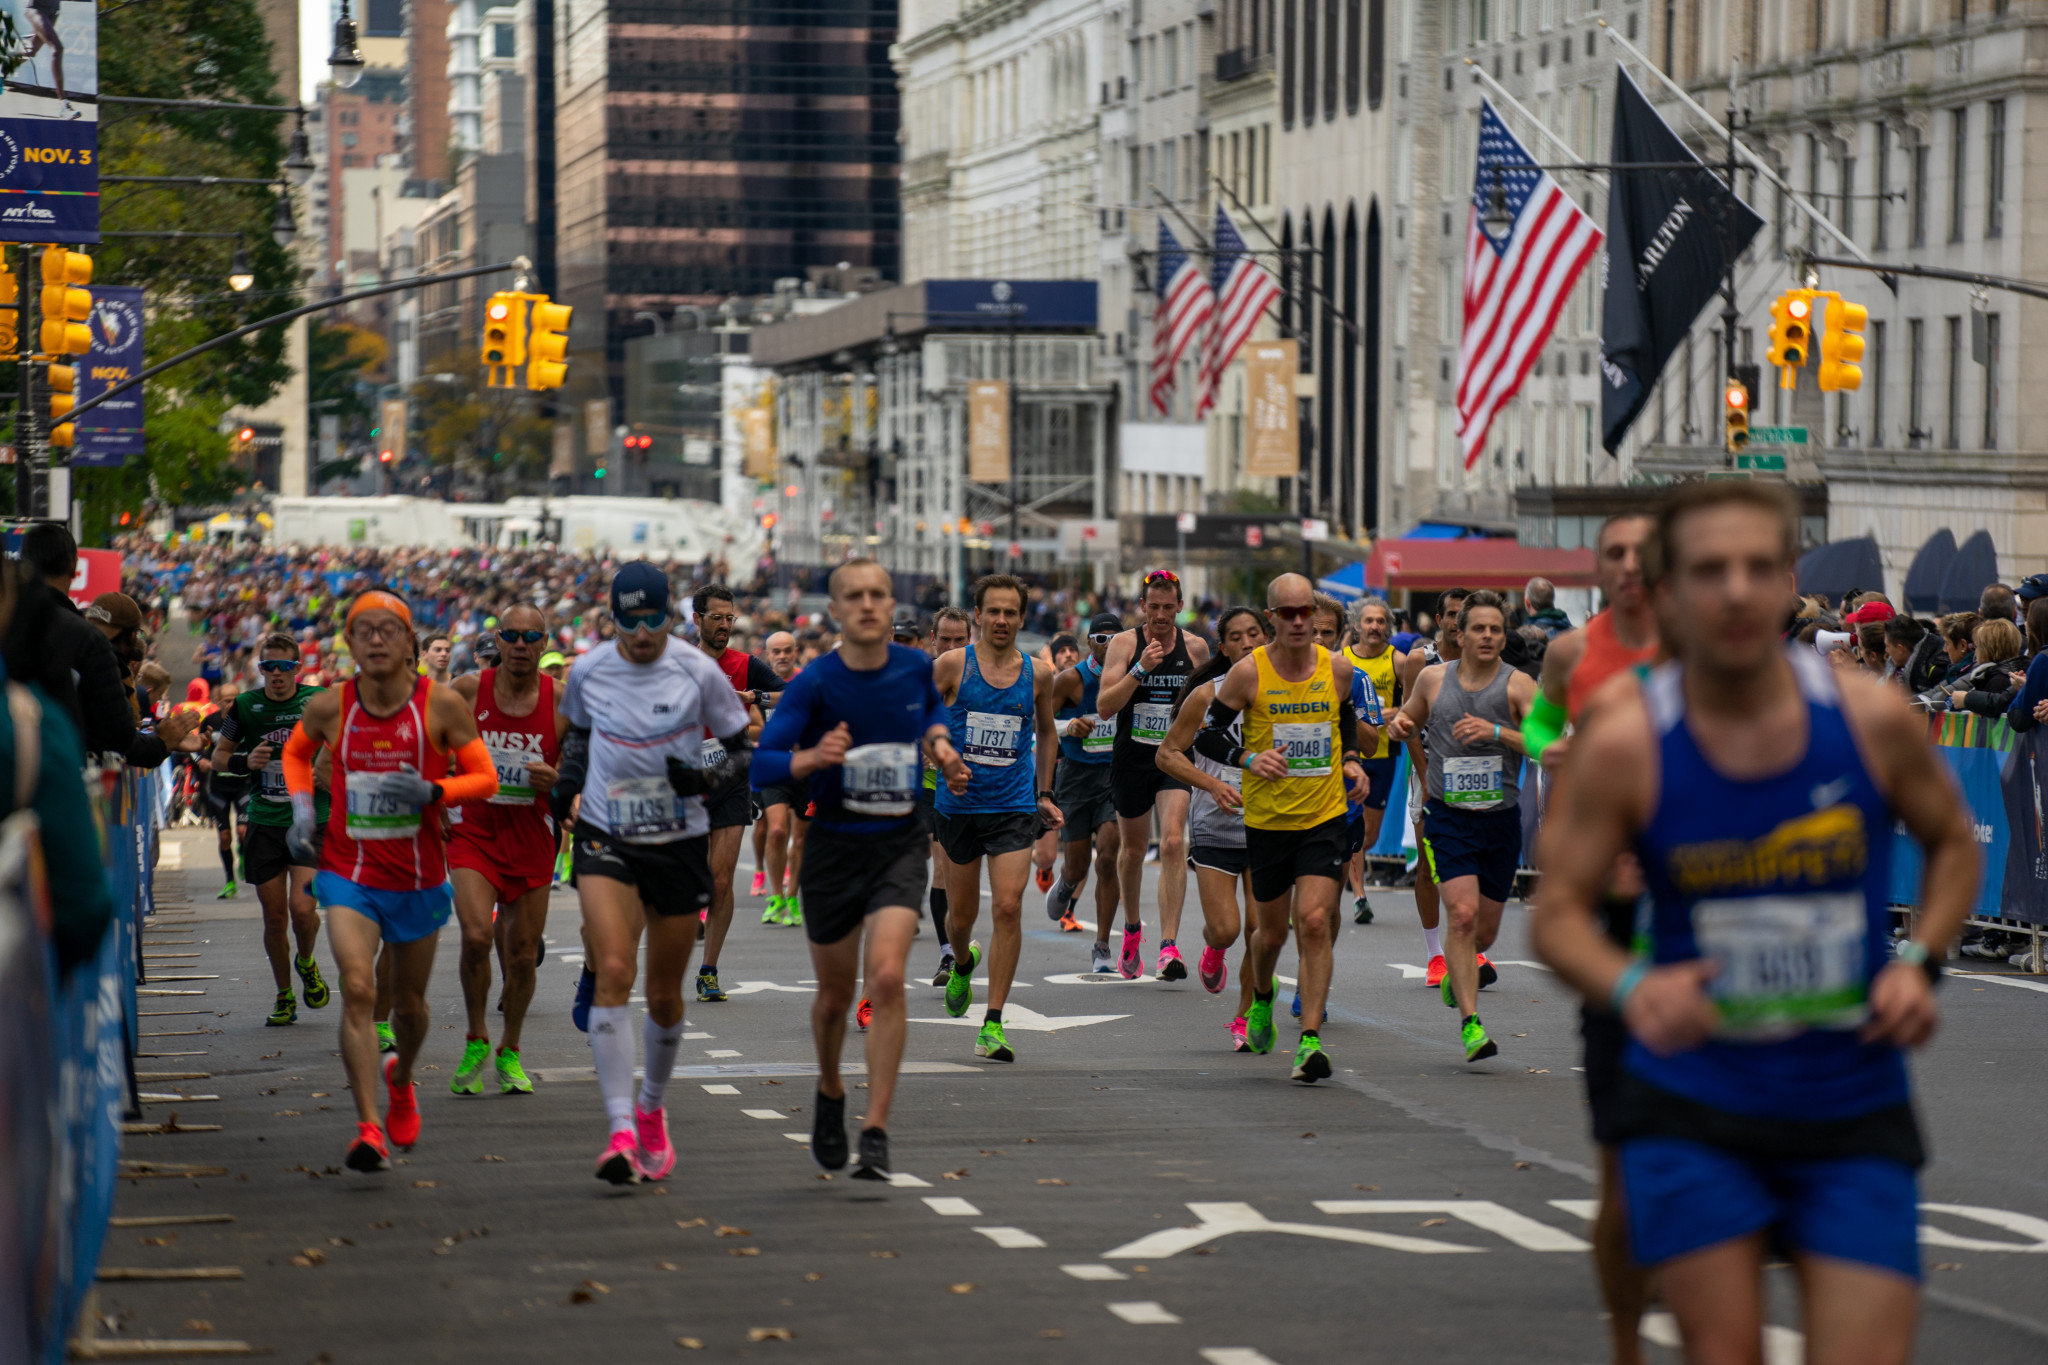 New York City and Berlin Marathons cancelled due to coronavirus